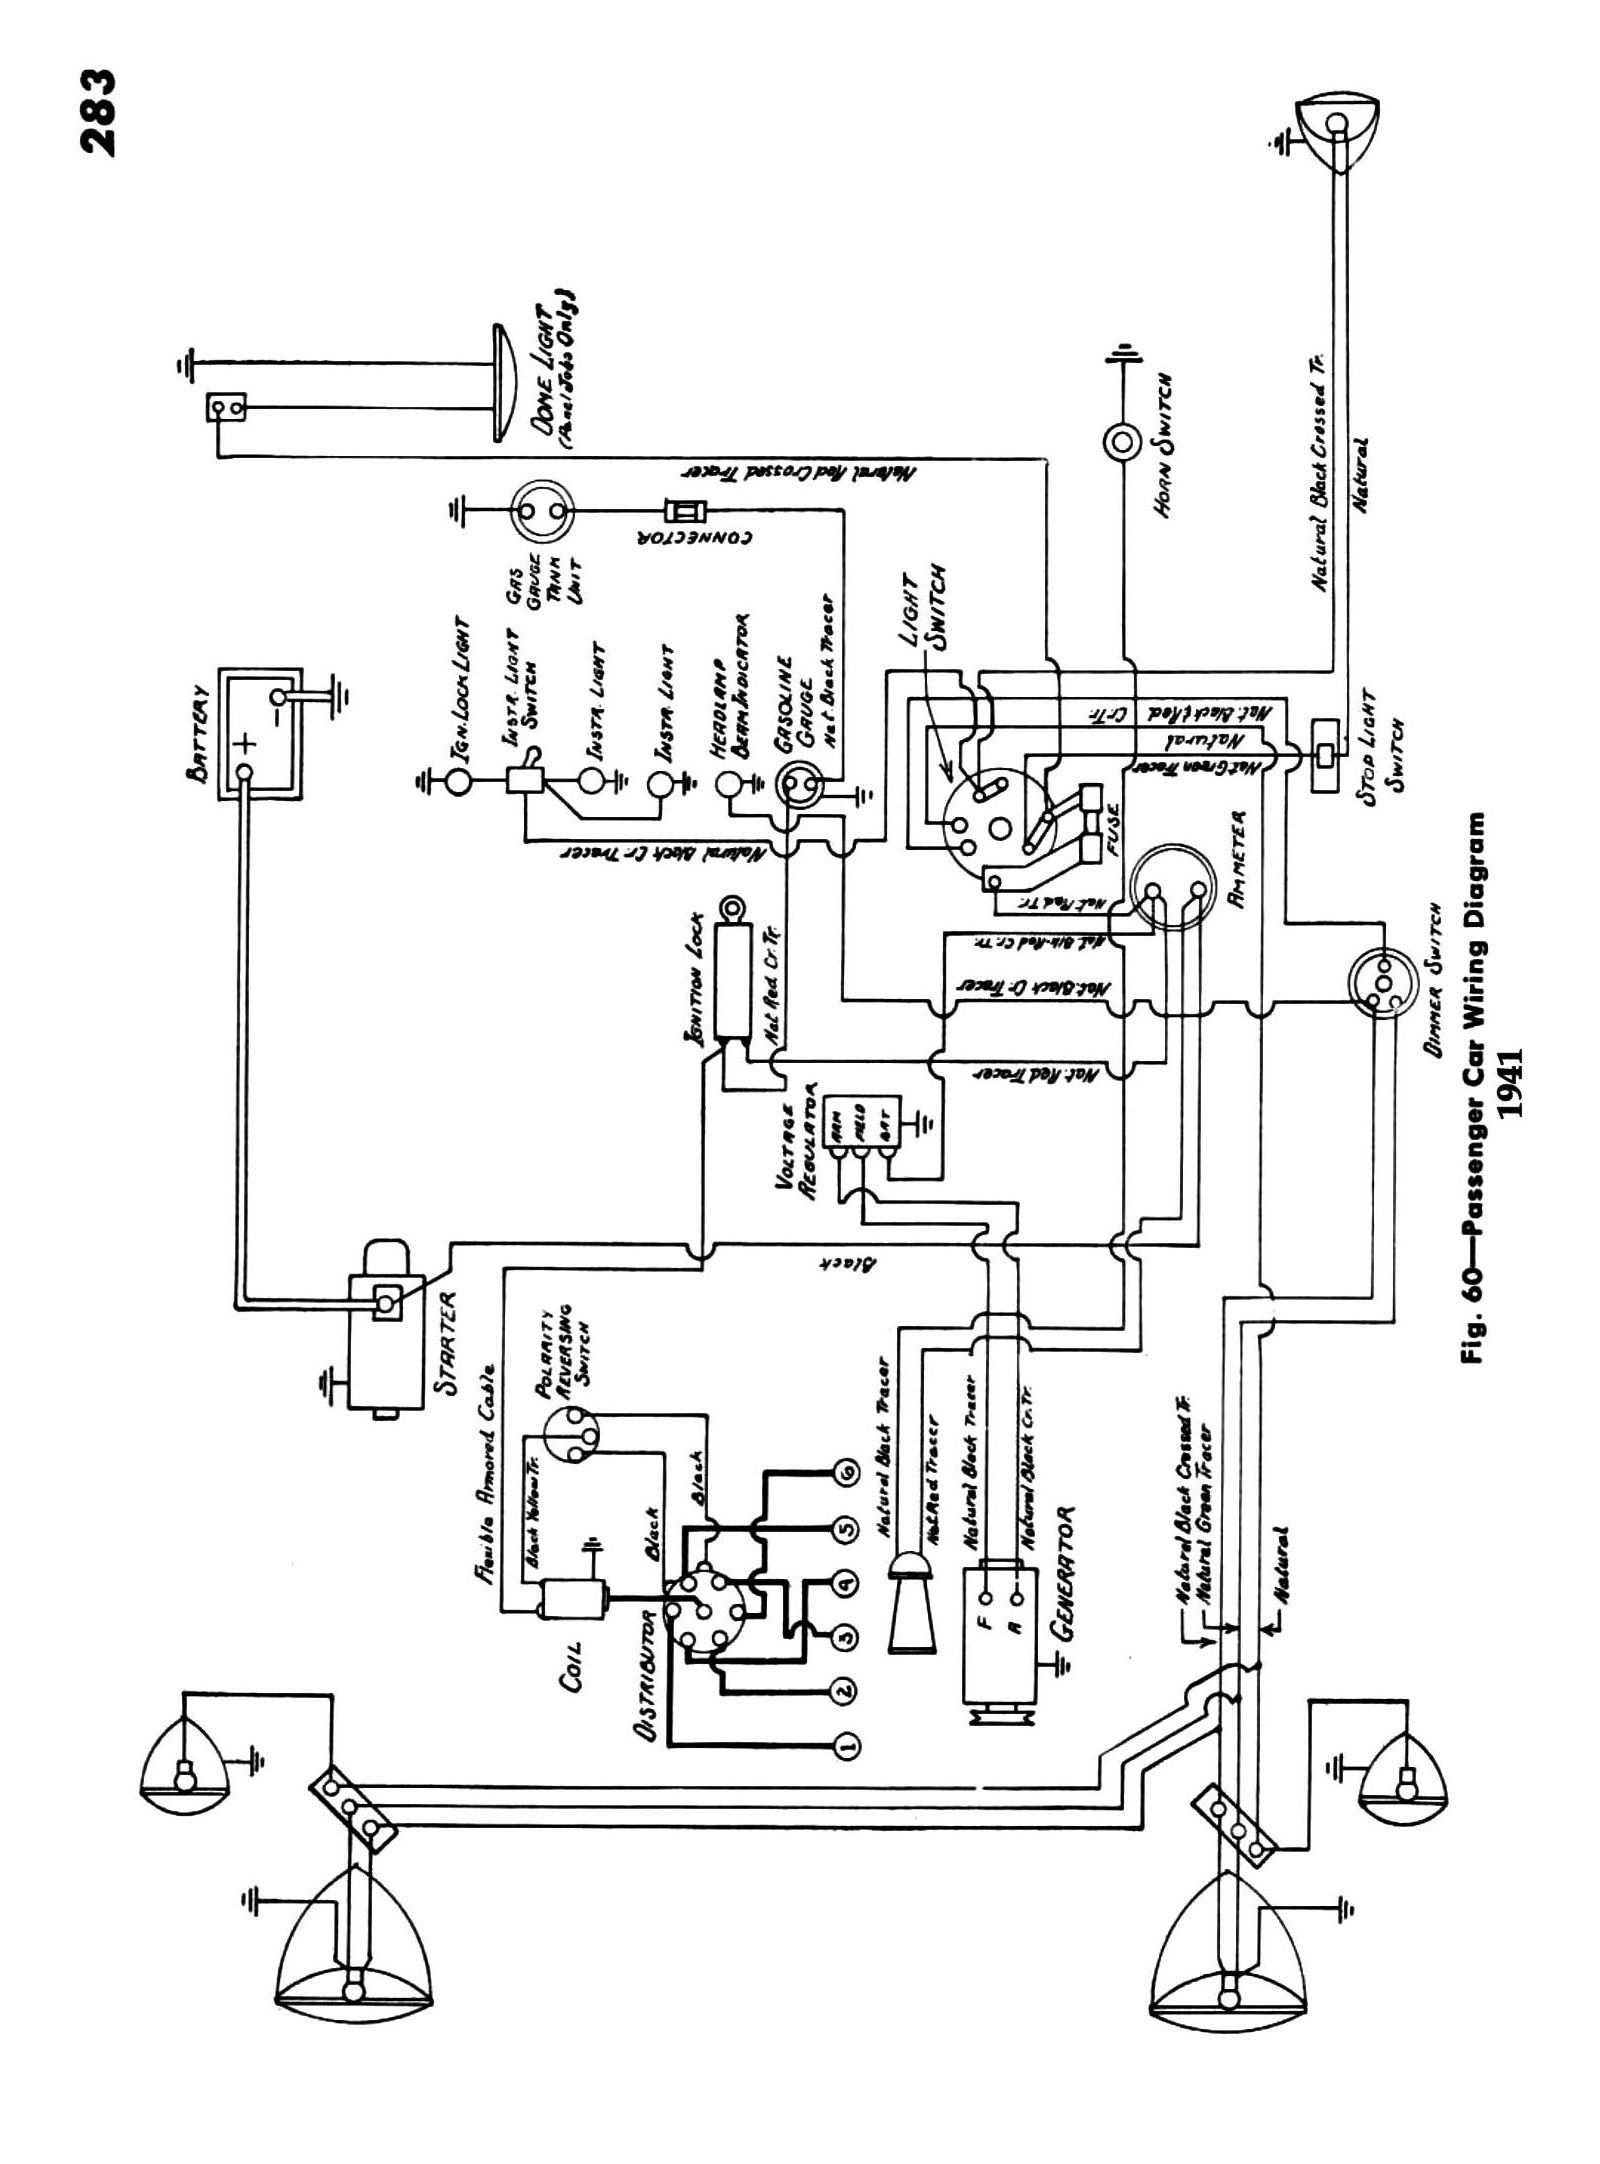 hight resolution of 1958 chevy ignition wiring wiring diagram expert 1958 chevy apache wiring diagram 1958 chevy wiring diagram